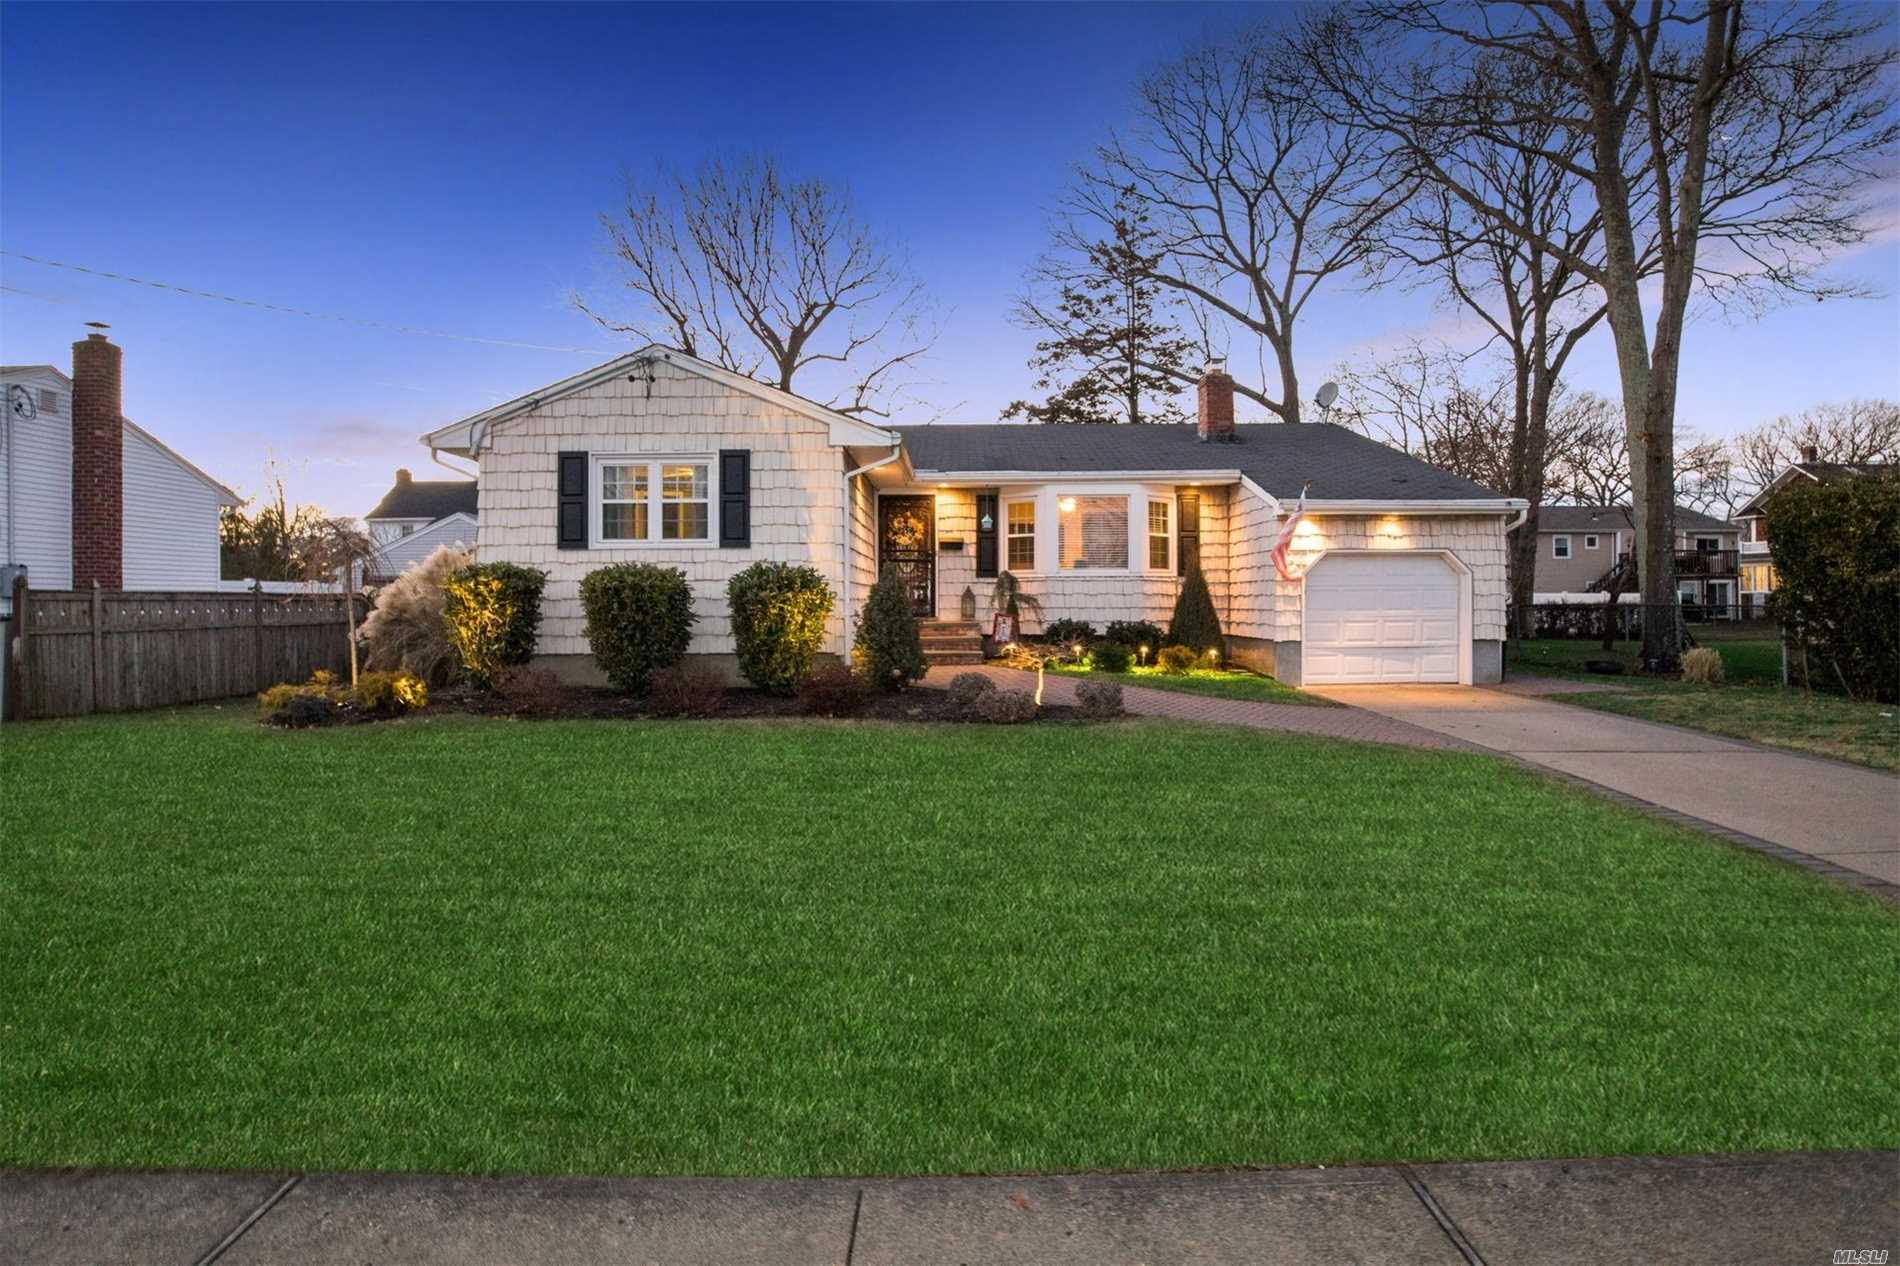 Beautiful Ranch In The Heart Of Massapequa Park, Walking Distance To Town And Railroad. Spacious 3 Bedroom Ranch, Updated Kitchen With Ss Appliances, Formal Dining Room, Living Room W/ Frpl, 3 Bedrooms, 1.5 Baths, And Attached 1 Car Garage. Very Large Basement With Laundry, Storage, Etc. Nice Size Lot With Large Deck & Patio For Entertaining And Large Lawn Area As Well. A Must See!!